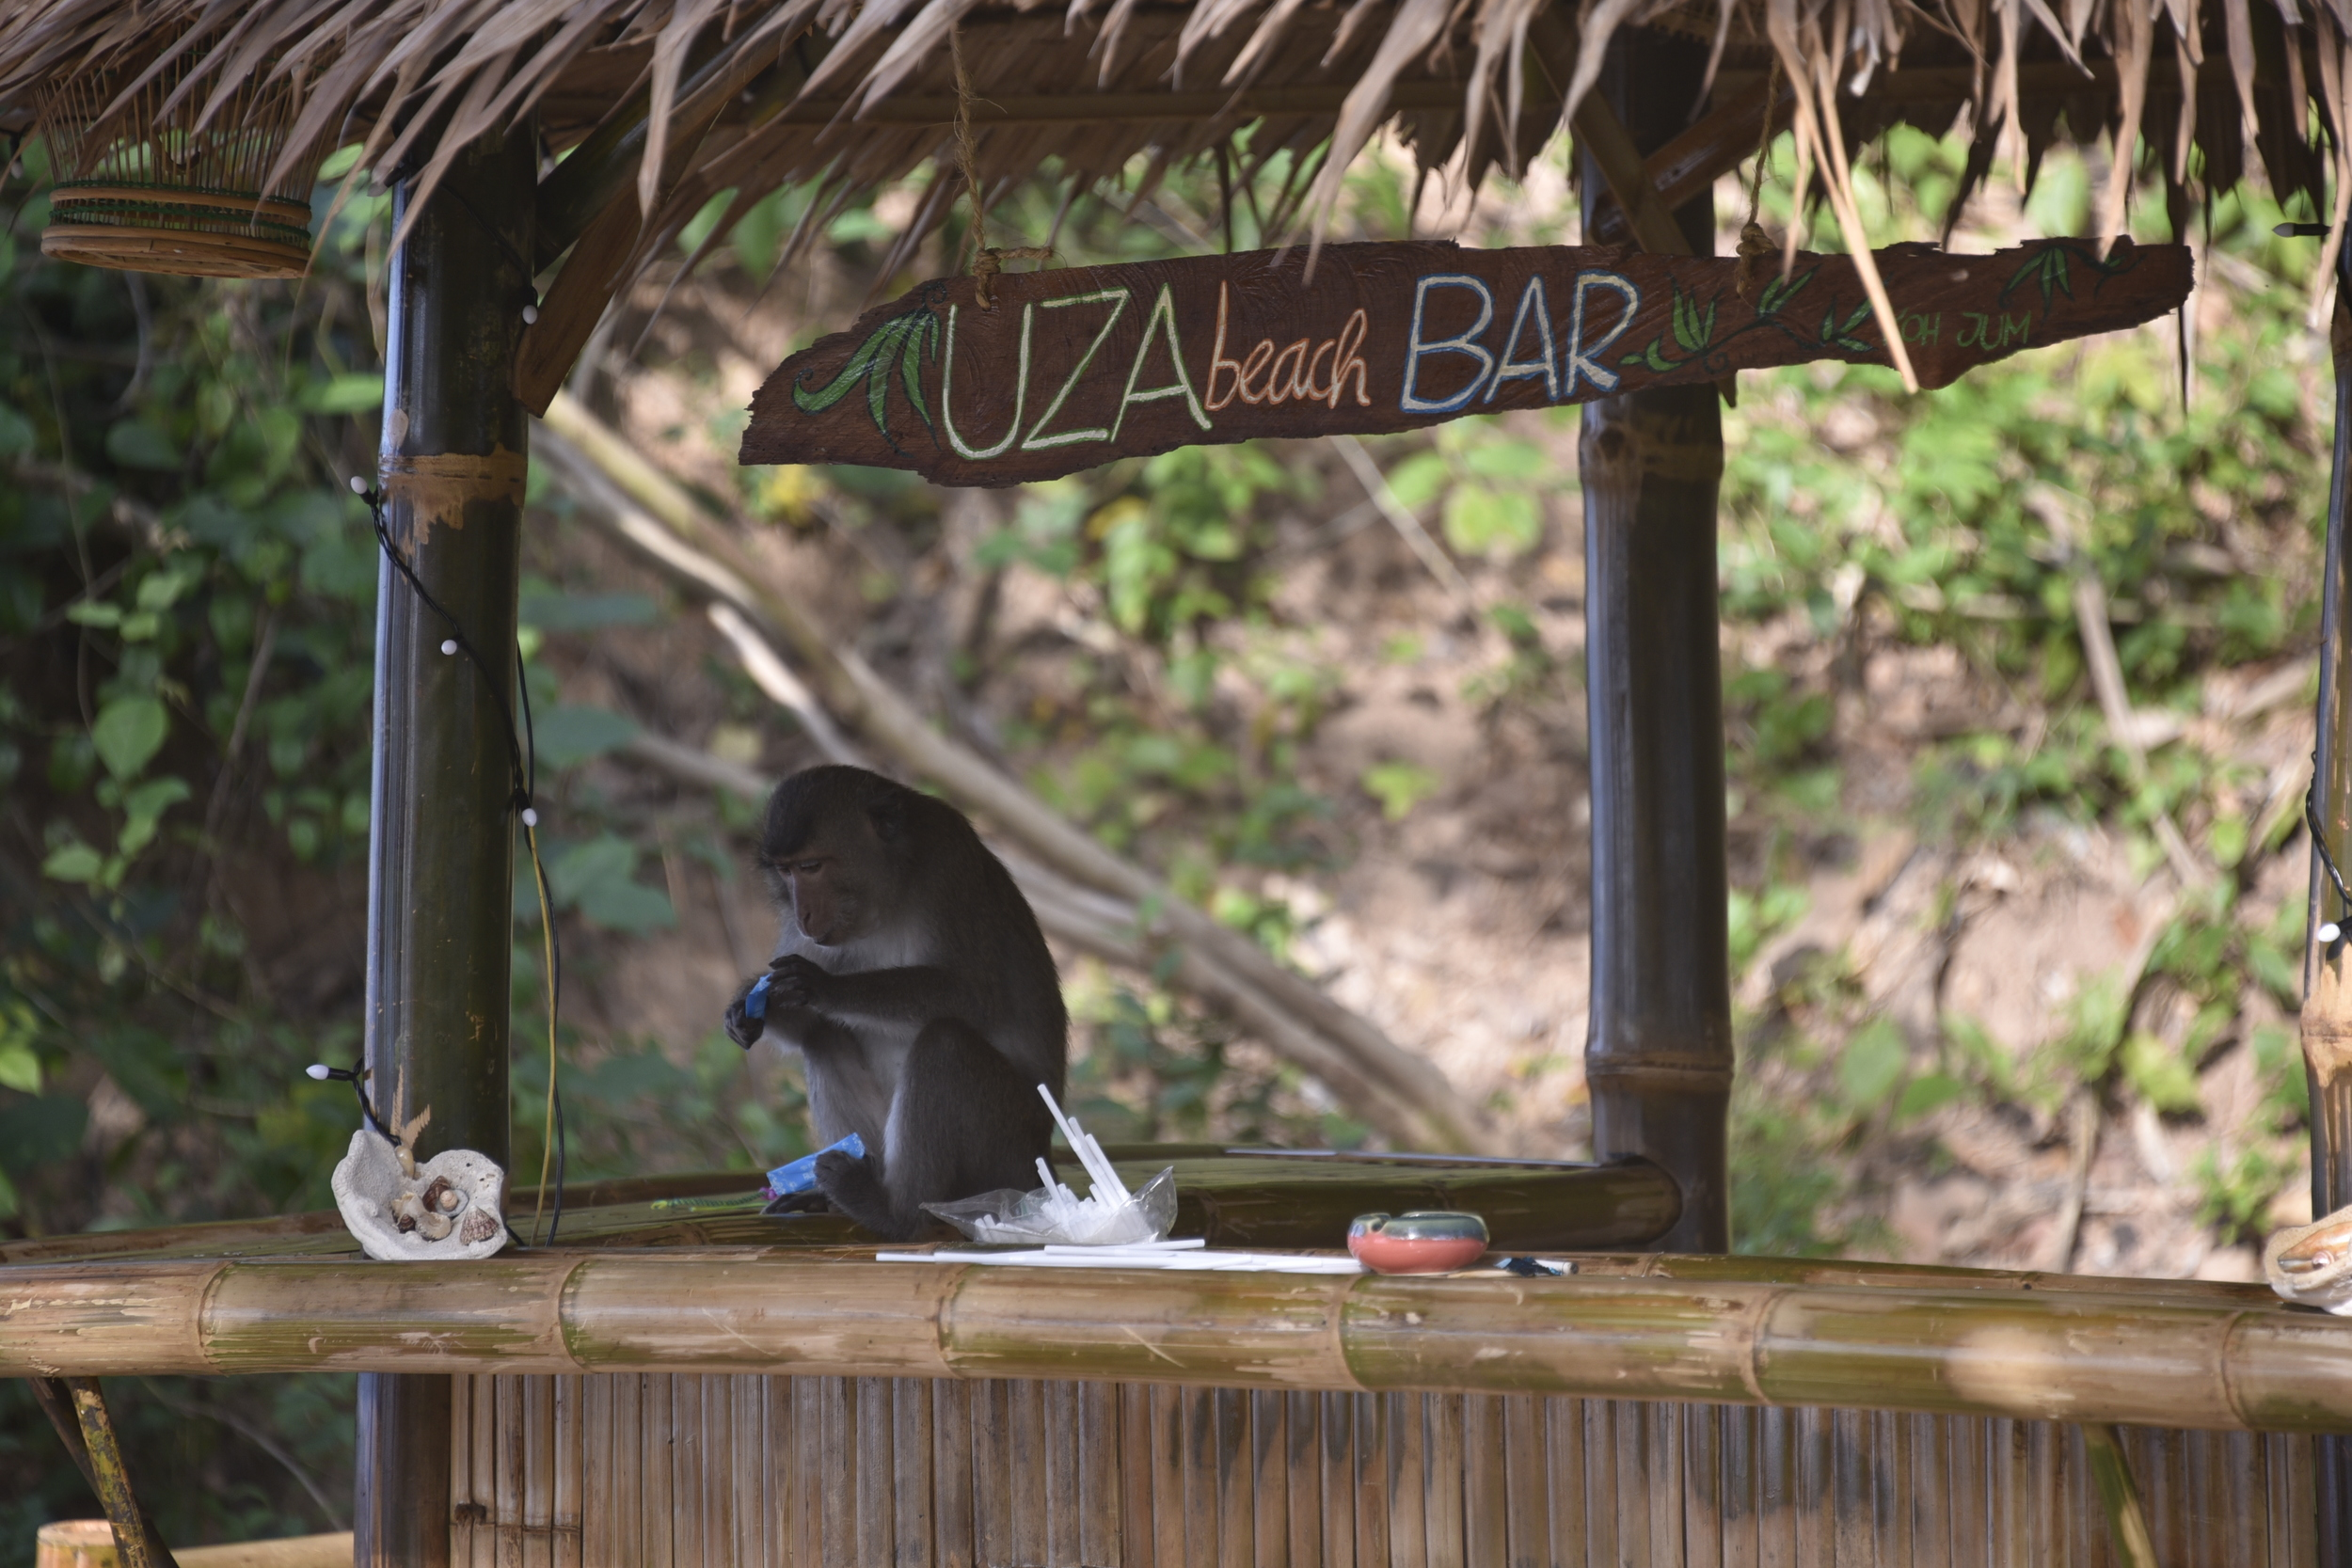 One of the monkeys decides to try bartending.